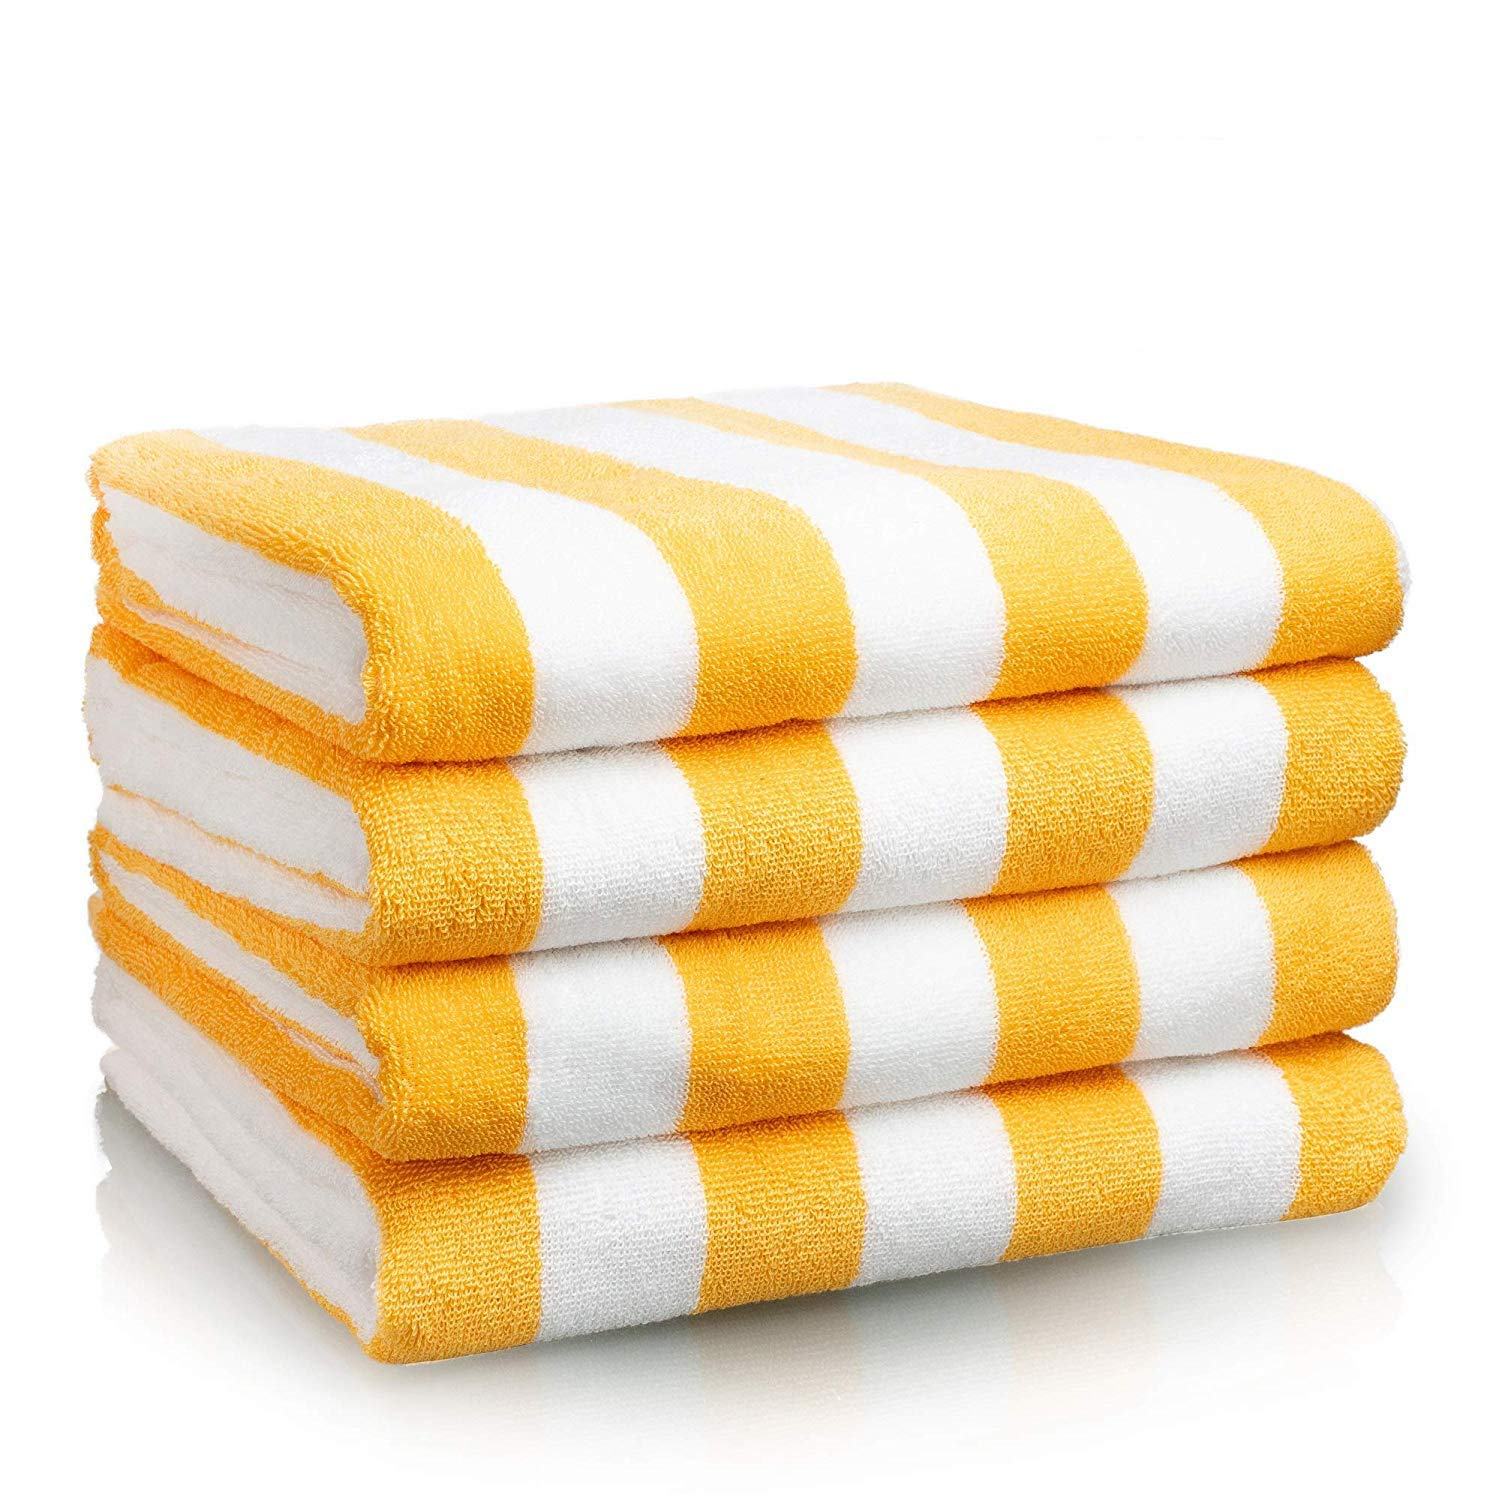 Canoo Outdoors Beach Towel - Premium LARGE Beach Towel (30 x 70 Inches) - Cabana Stripe Pool Towels - 100% Cotton Oversized Towel - YELLOW- 4 PACK